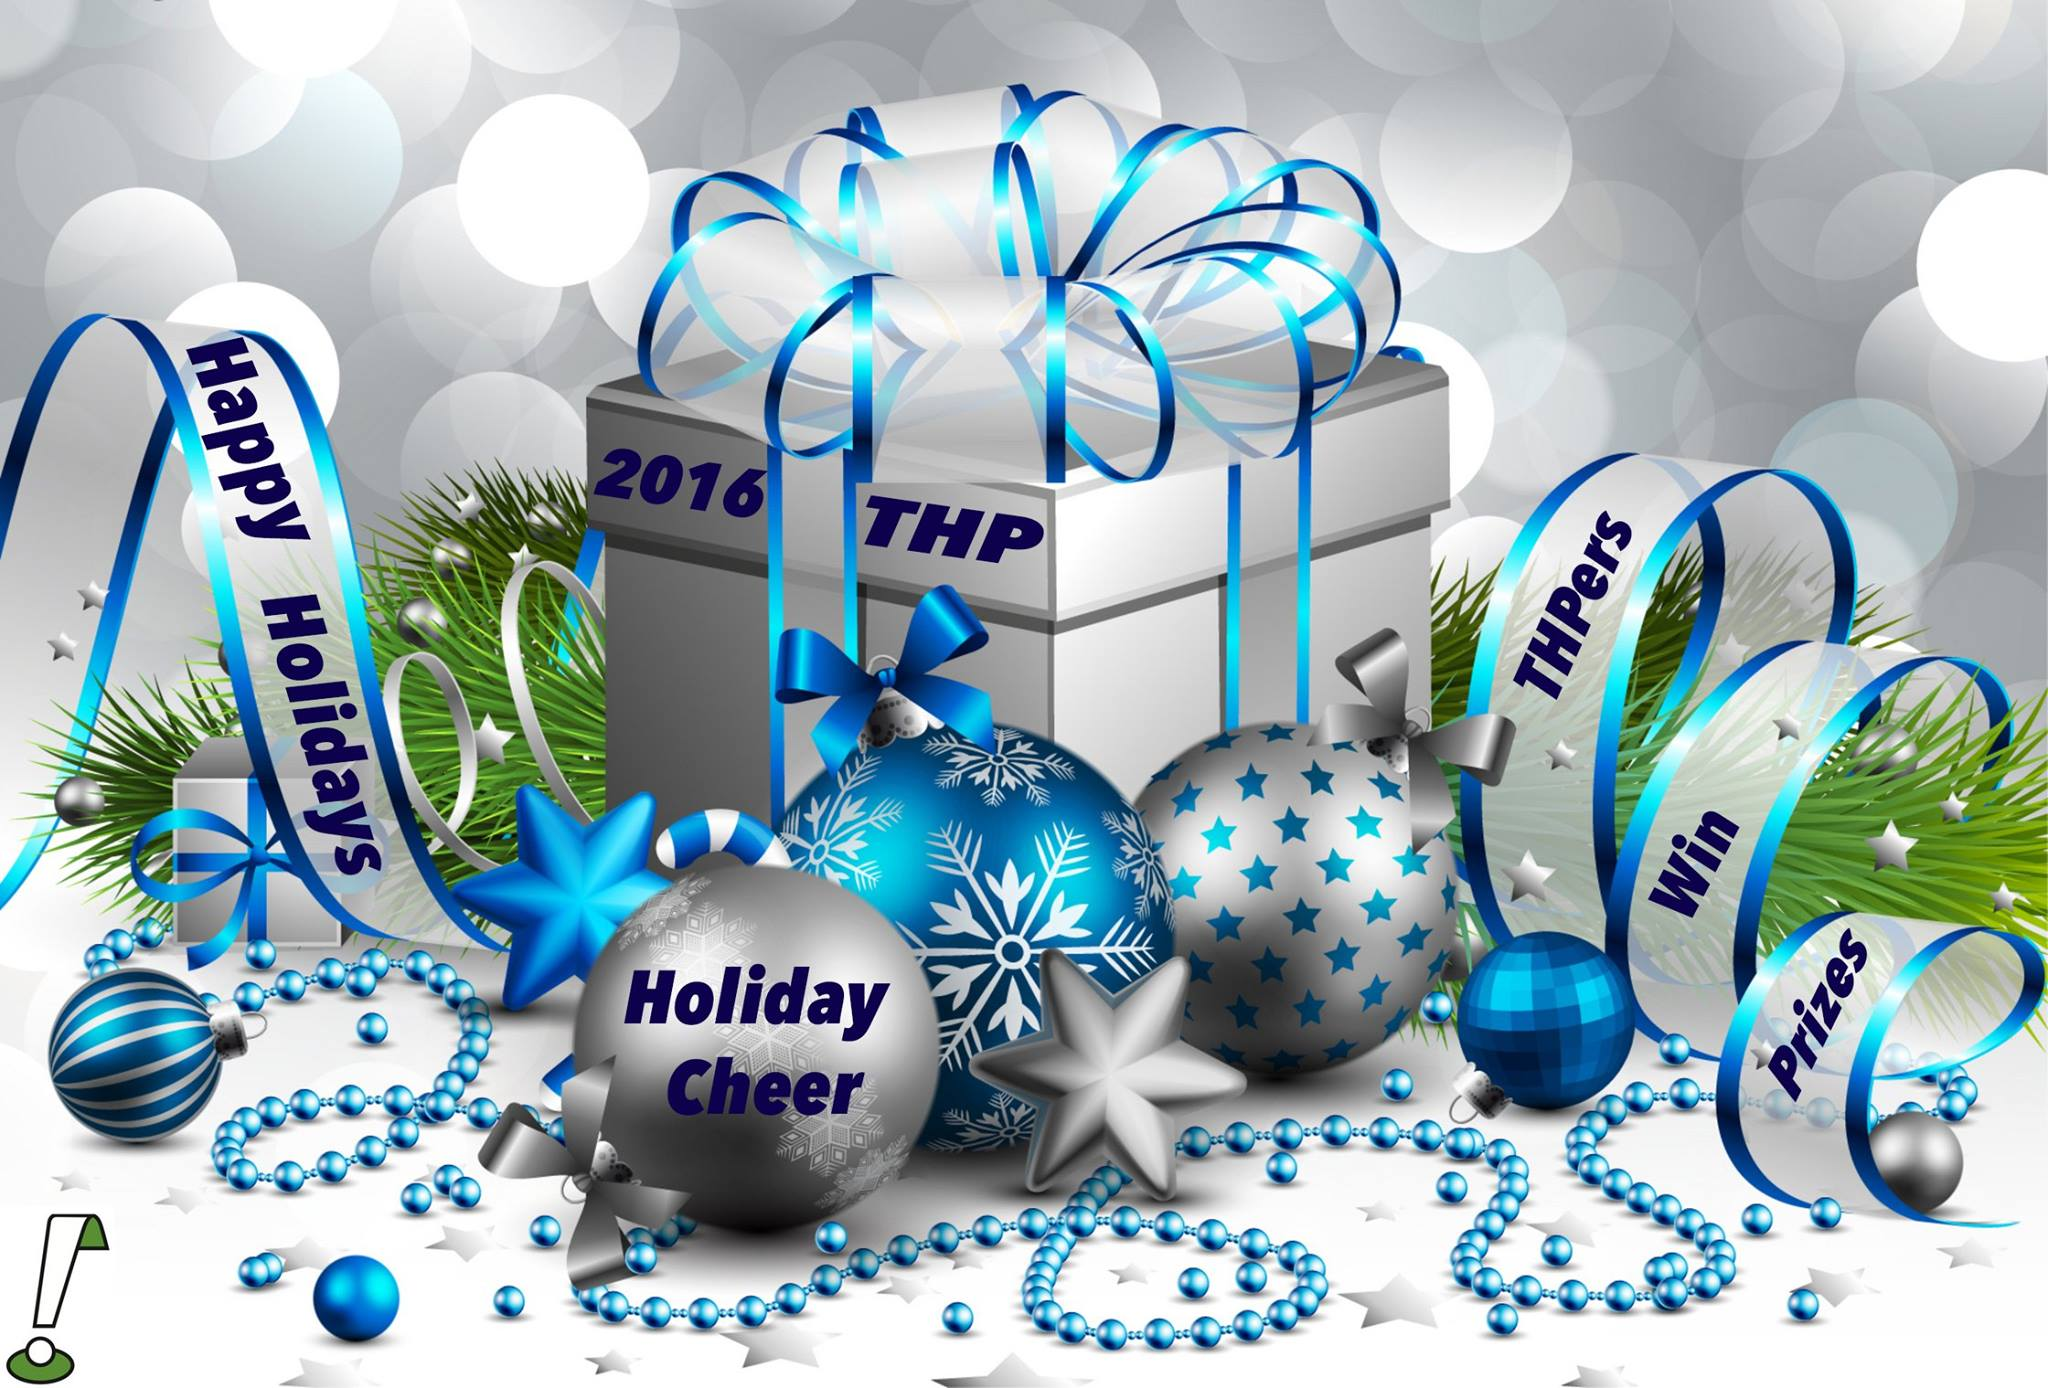 THP Holiday Cheer Day 1 – Win Snell Golf for a Year!